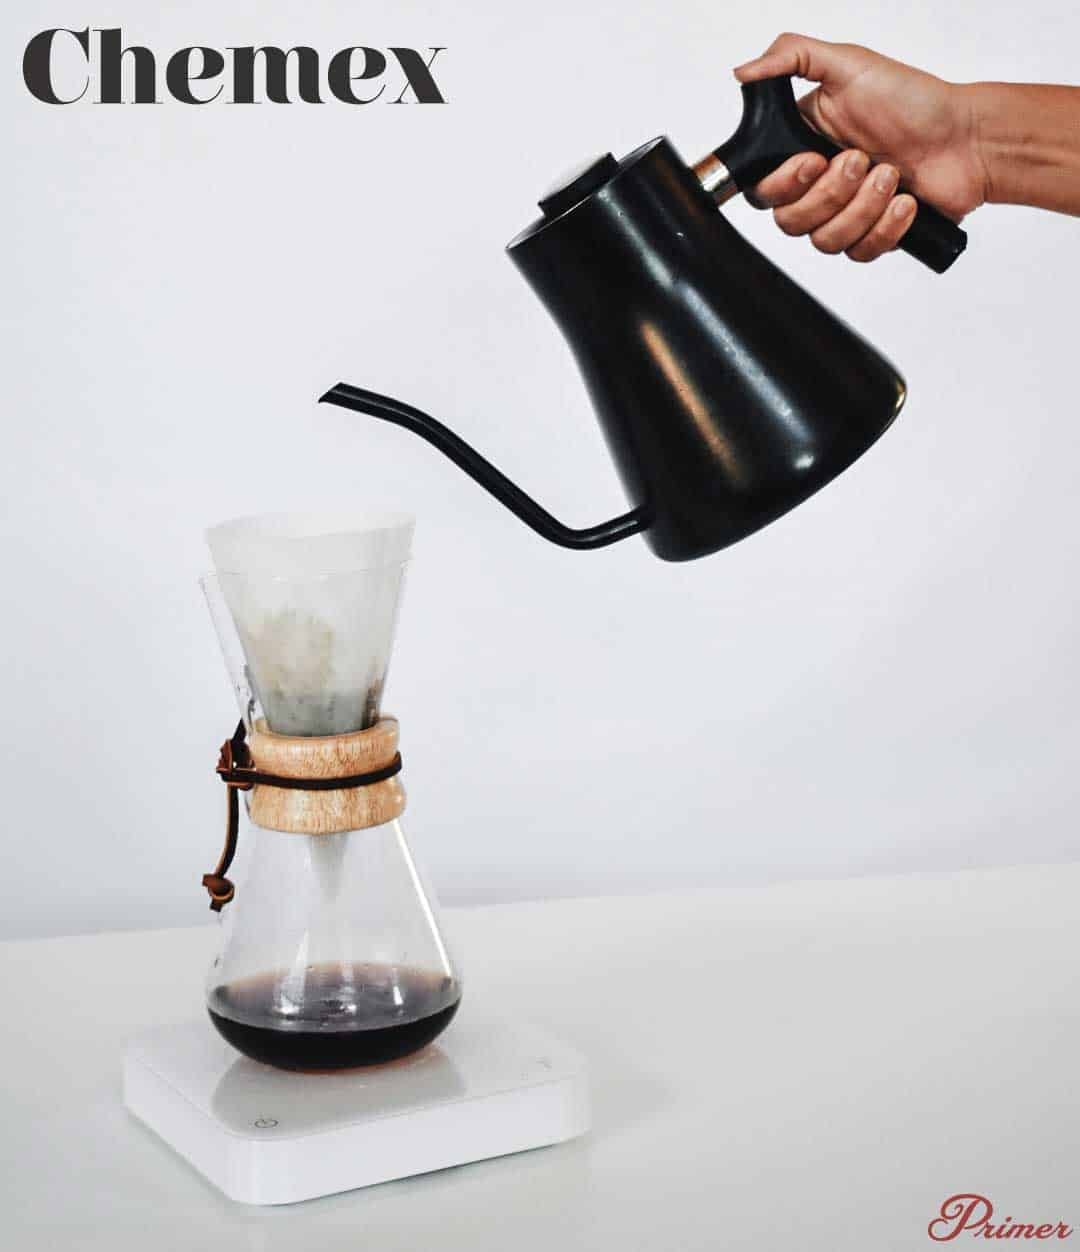 Chemex Pour Over dripper differences